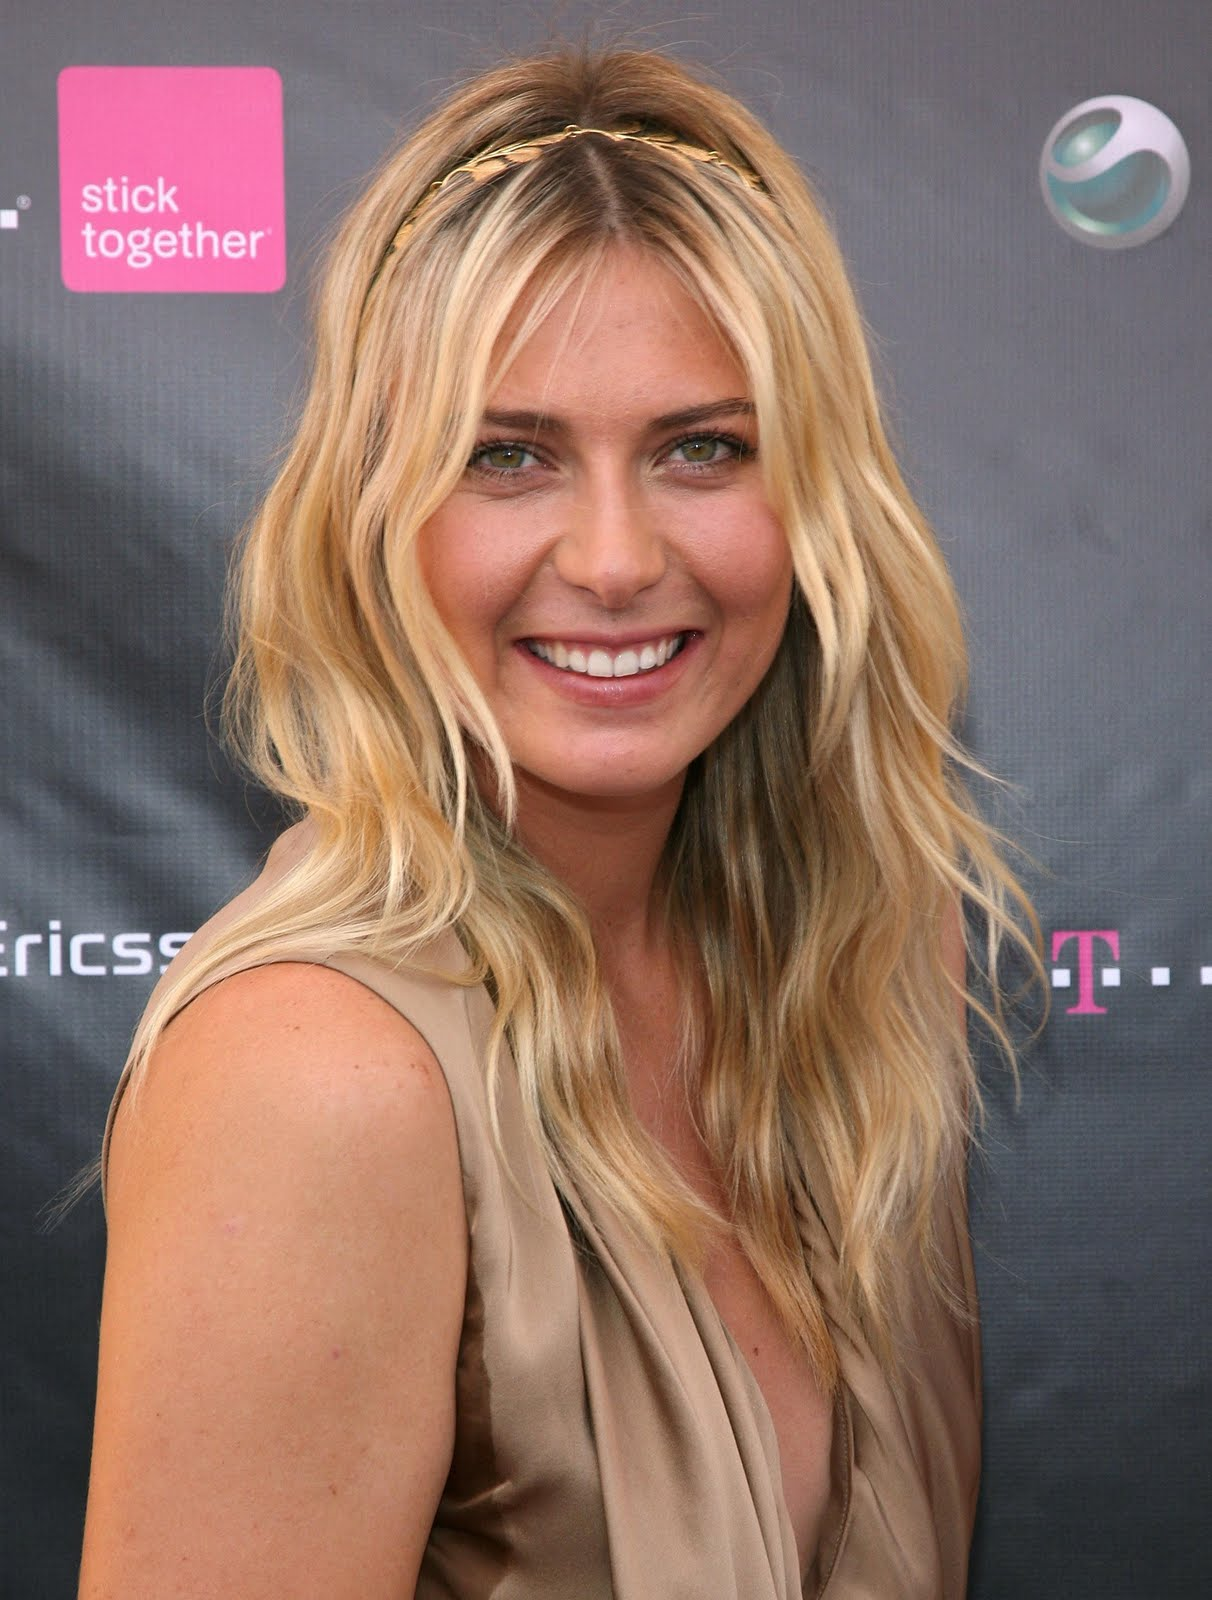 http://4.bp.blogspot.com/-NBTQCrjZ_1U/TgnhDnyieXI/AAAAAAAAG2I/V4Cd1o8U7-Y/s1600/78718_ie_-_Maria_Sharapova_at_the_T-Mobile_and_Sony_Ericsson_Maria_Sharapova_Look-a-like_contest_at_the_new_T-Mobile_store_in_Canoga_Park_-_Oct__31_2009_7327_122_72lo-704979.jpg